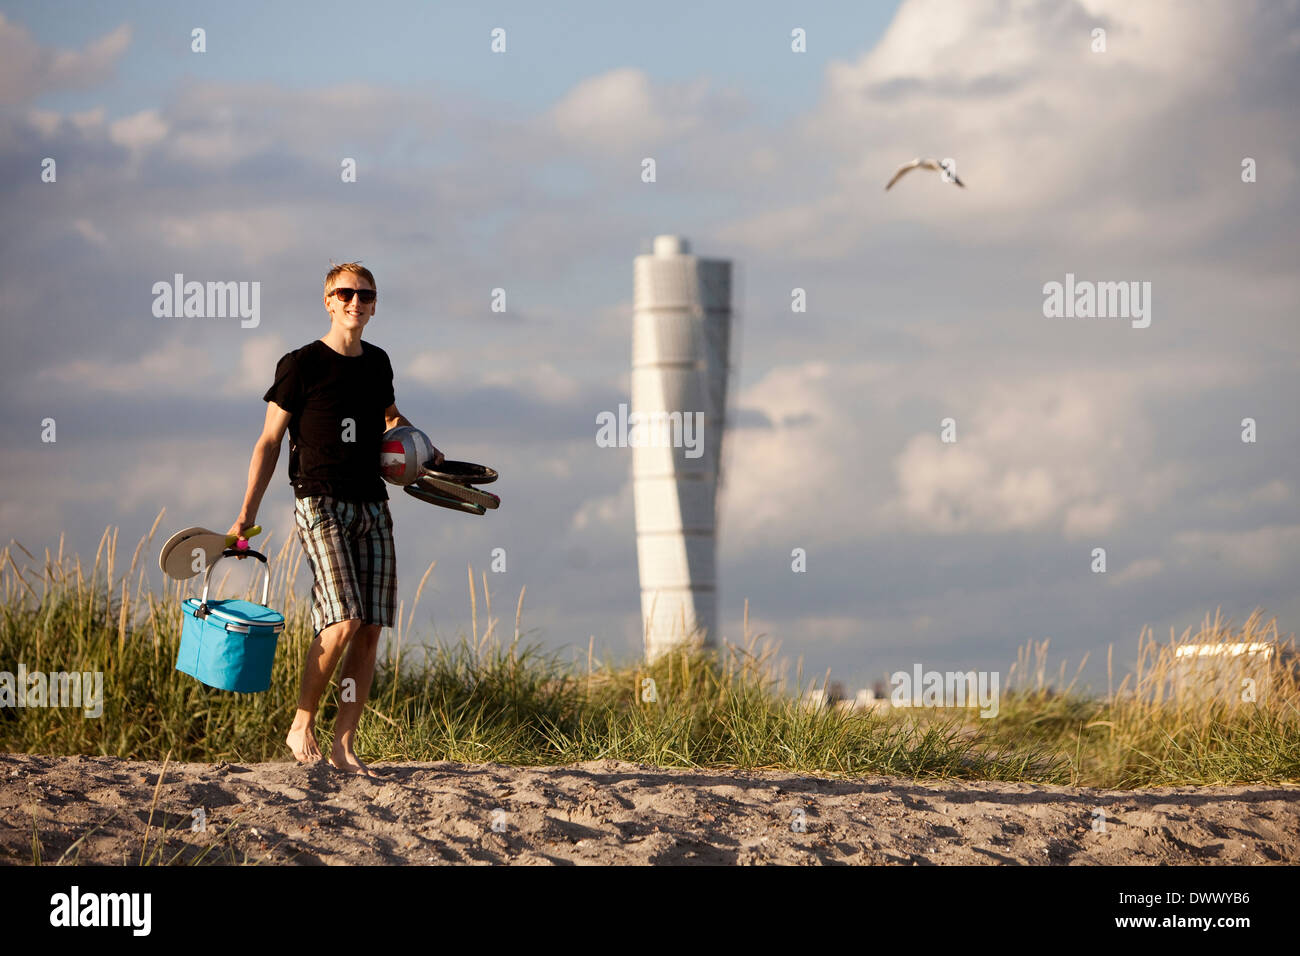 Young man carrying picnic equipment at beach - Stock Image